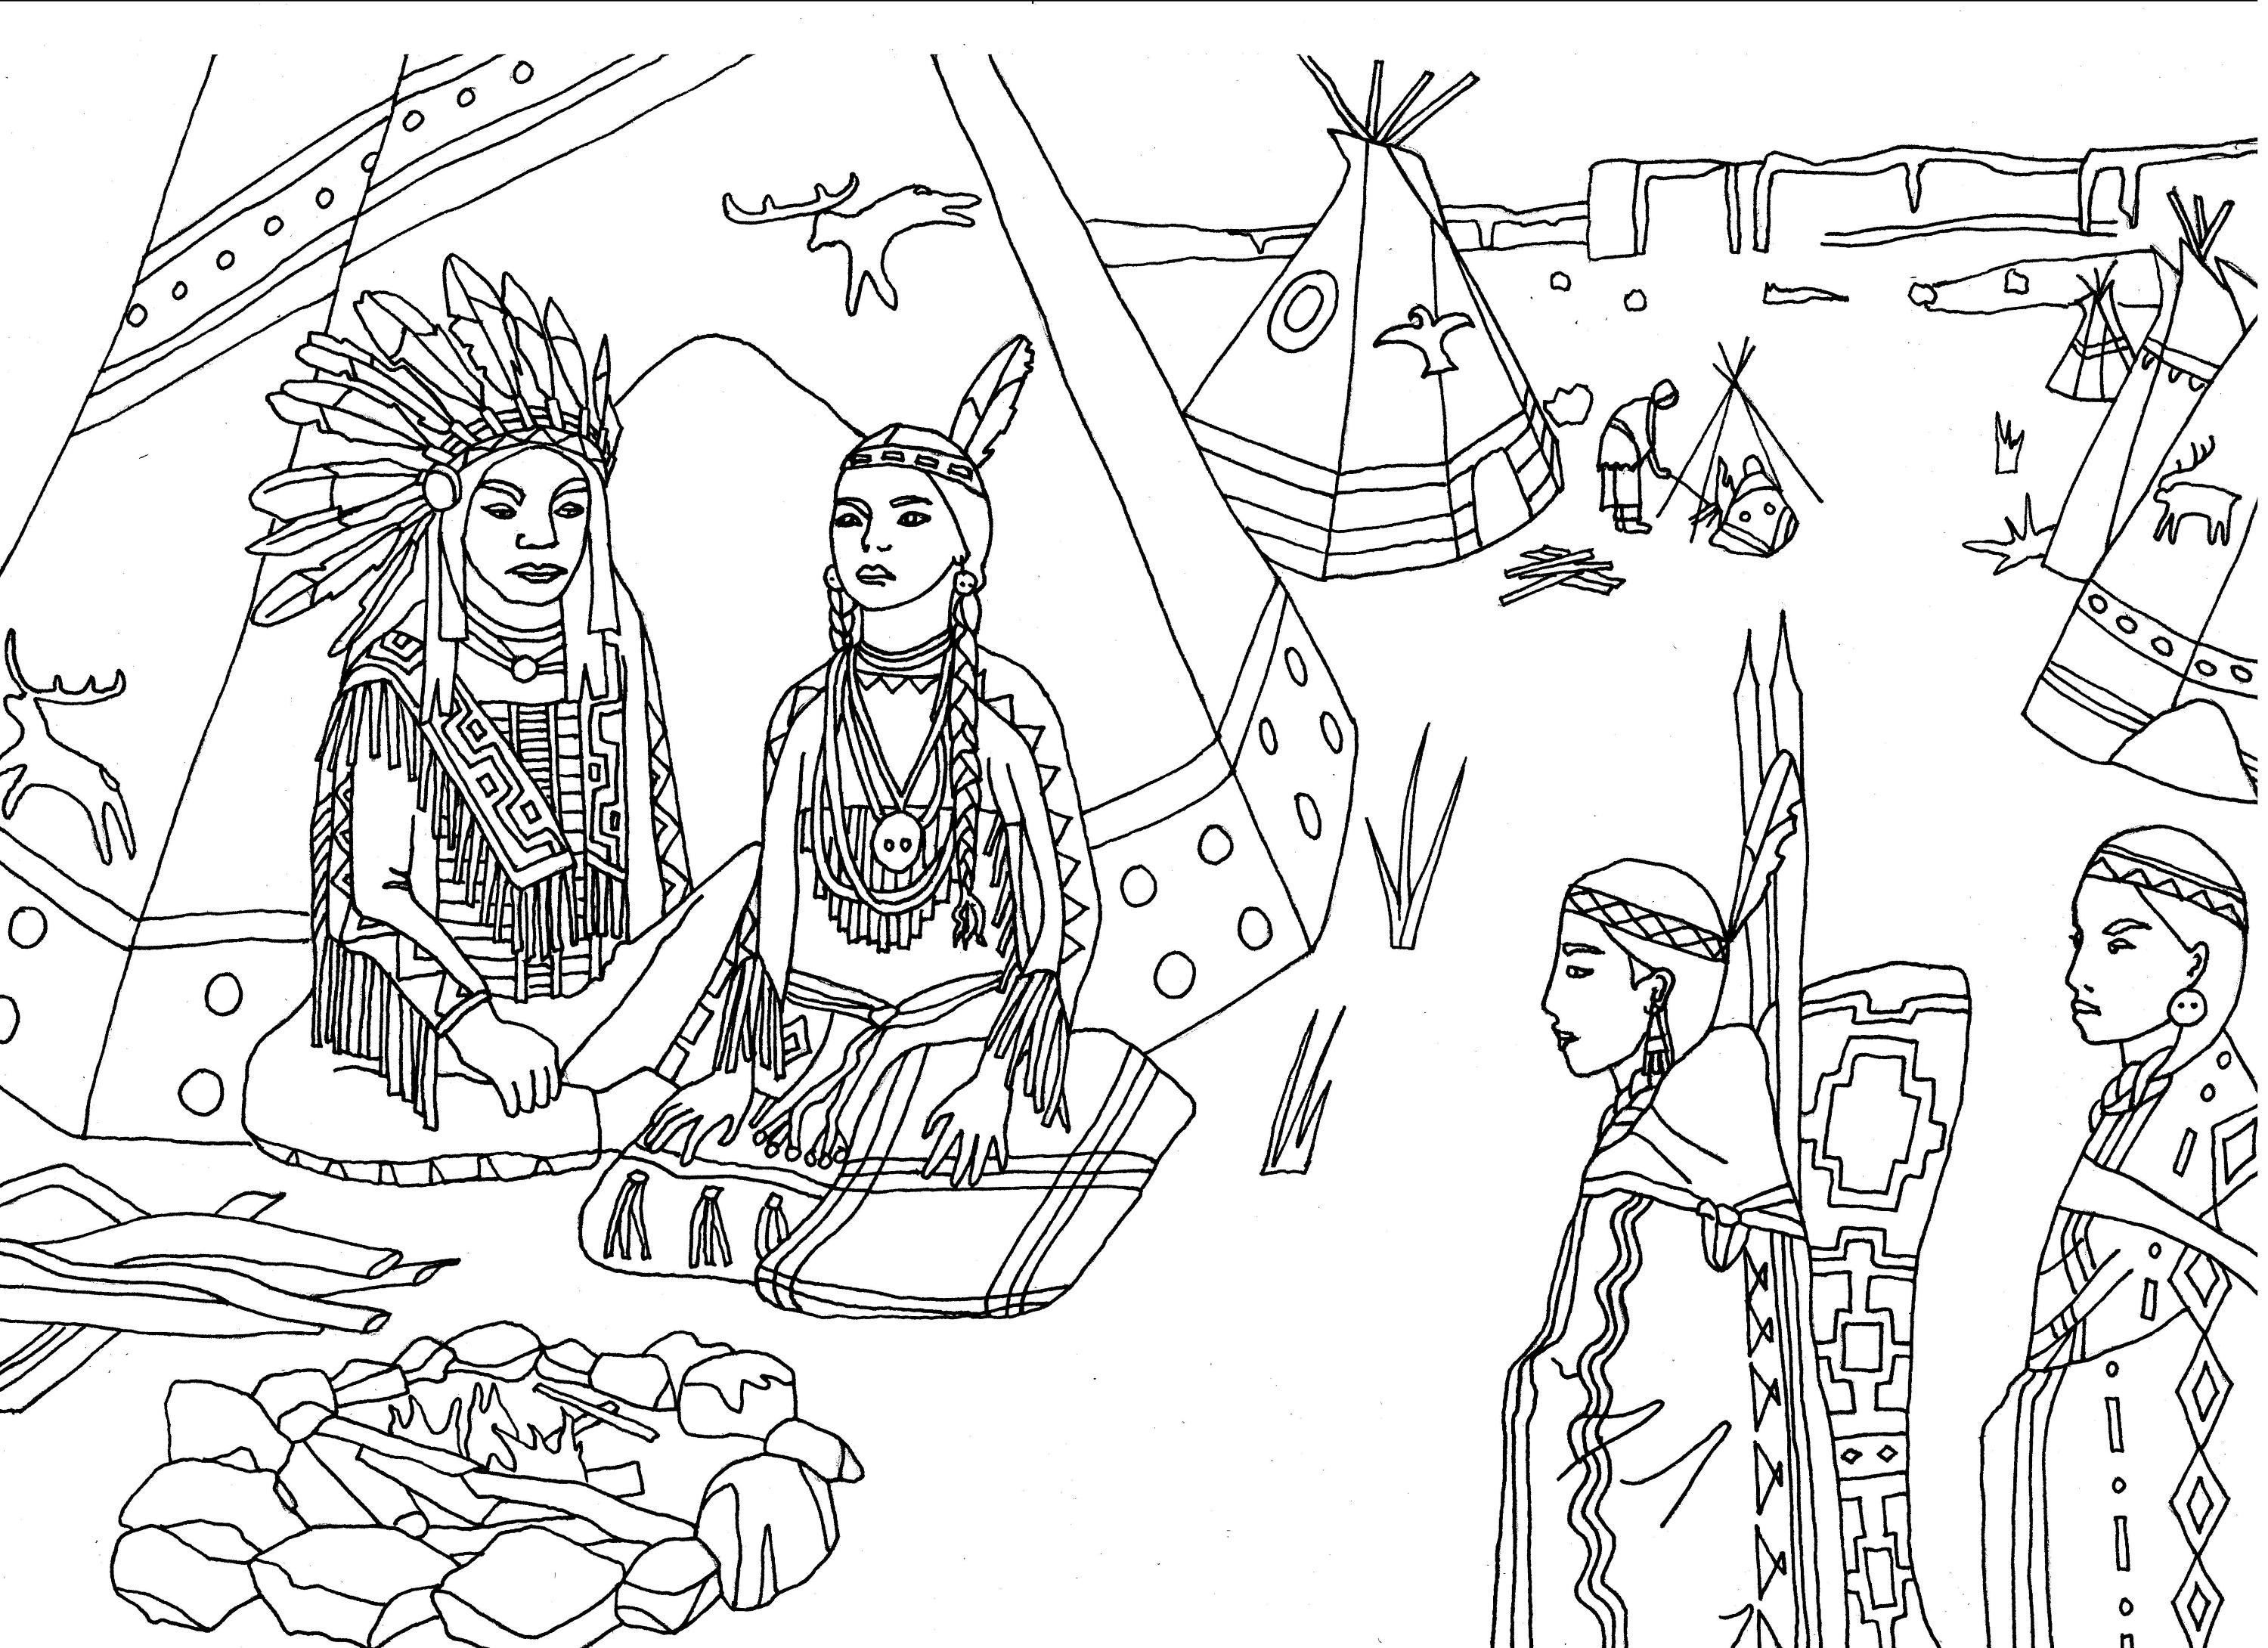 Native americans indians sat front of tipi - Native American Adult ...